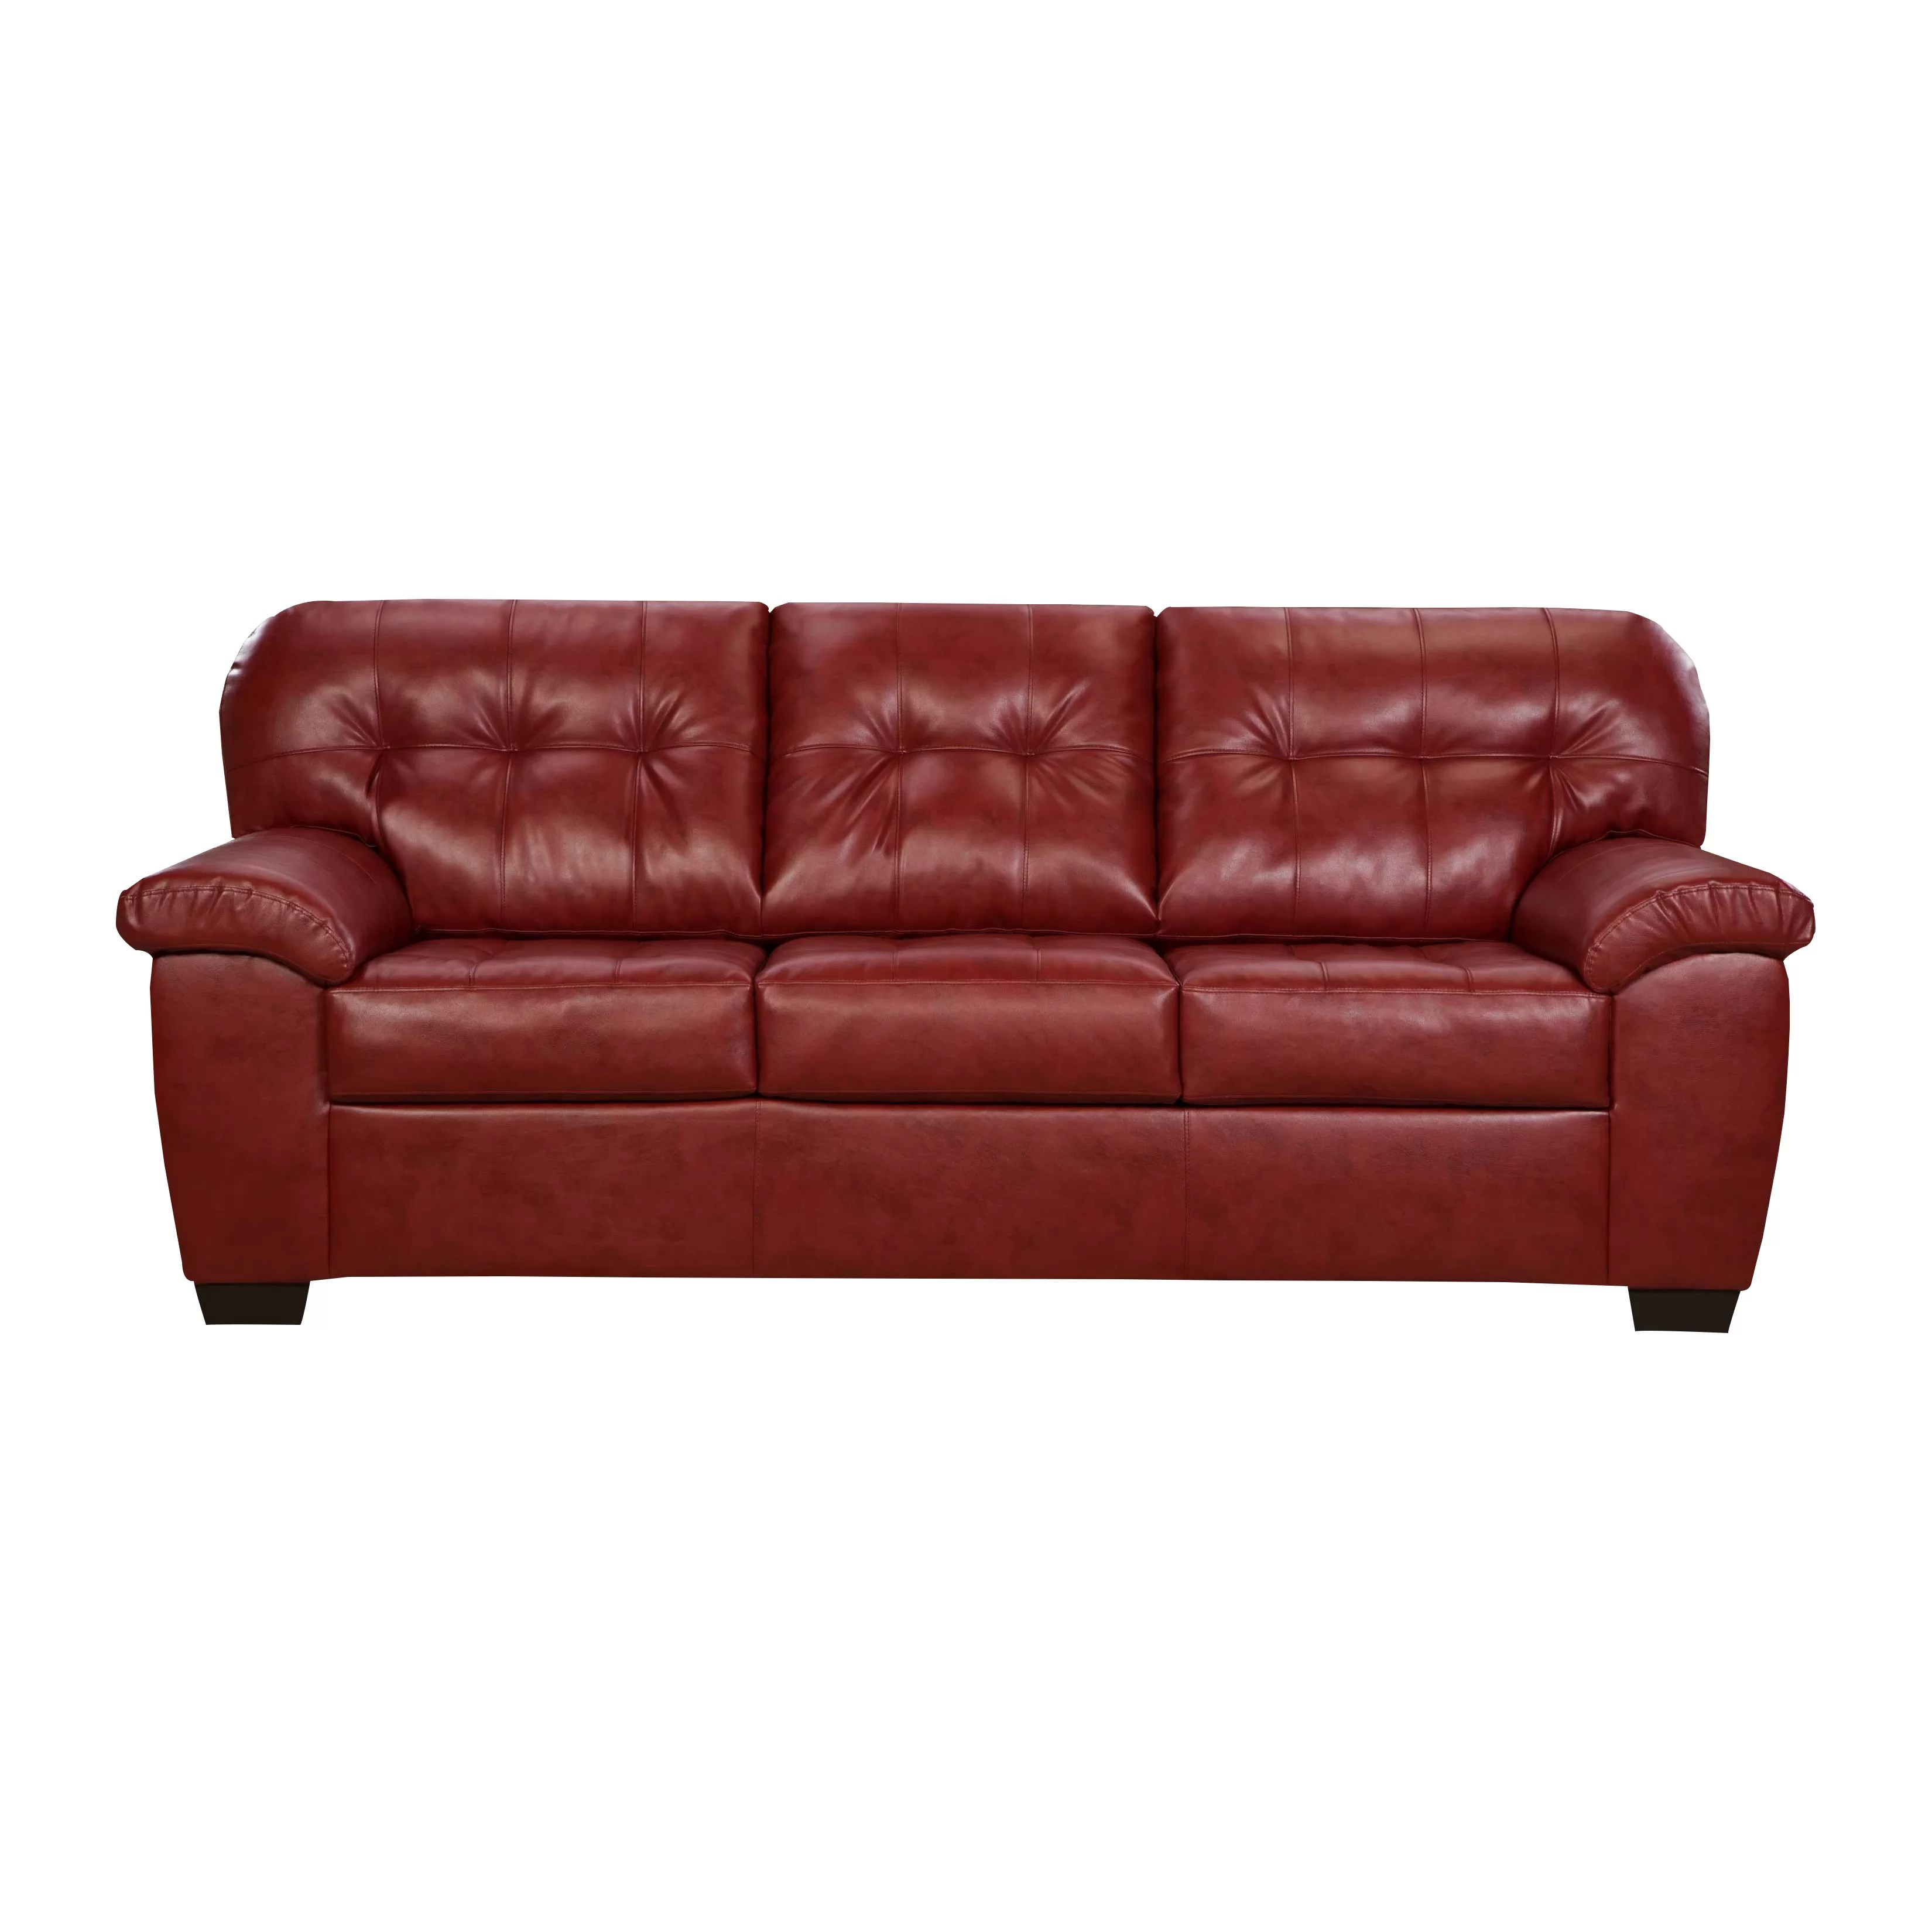 Simmons Upholstery Showtime Sofa & Reviews